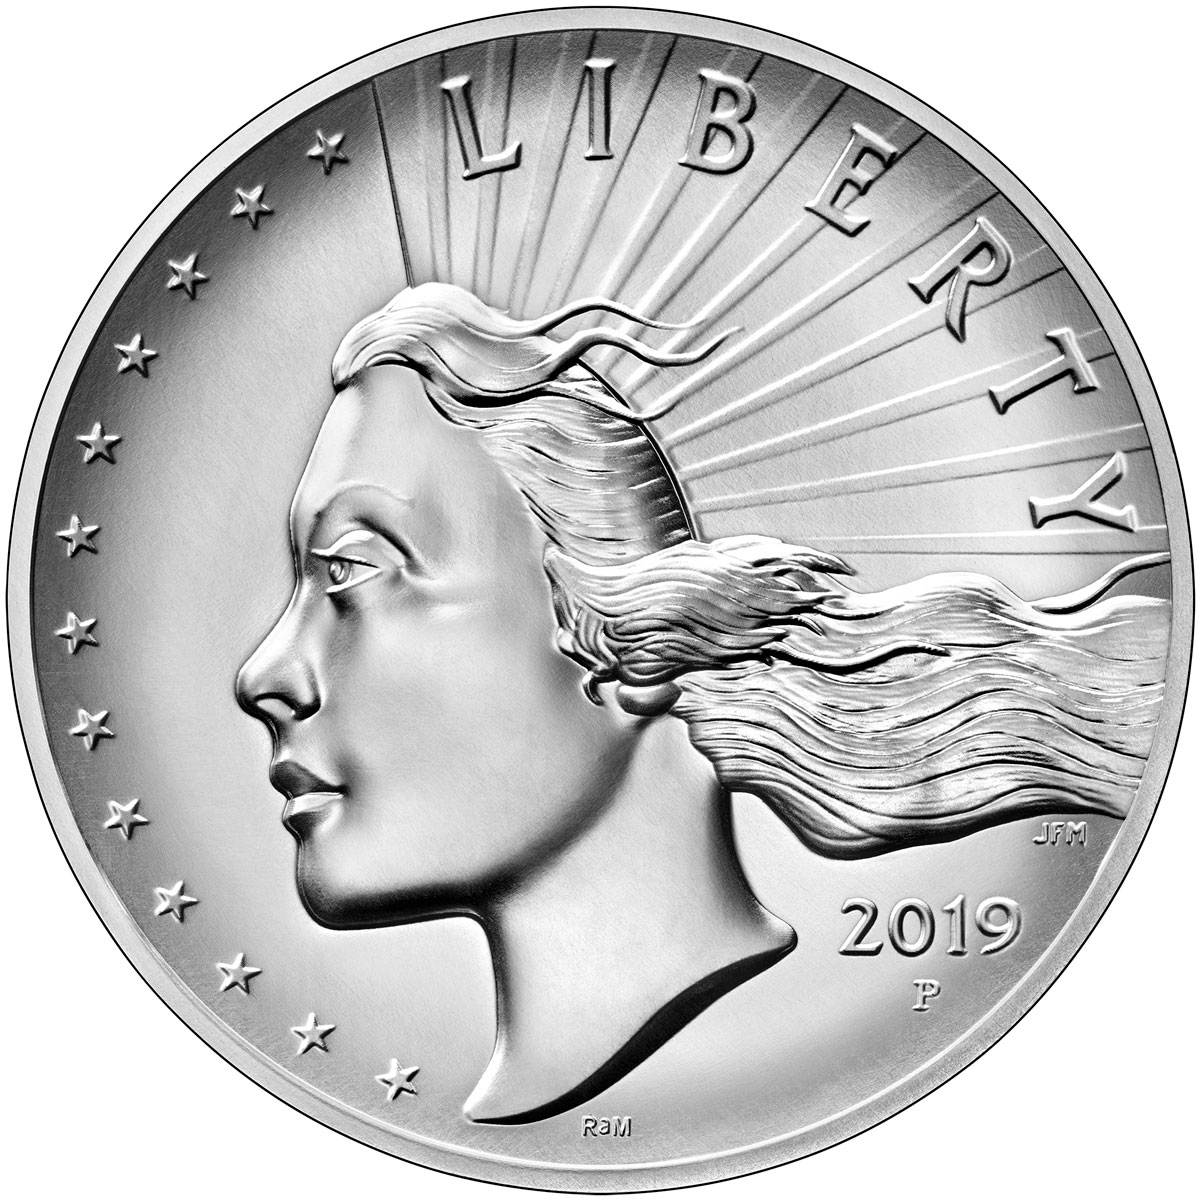 2019-P American Liberty High Relief Medal 2.50 oz Silver Medal With OGP